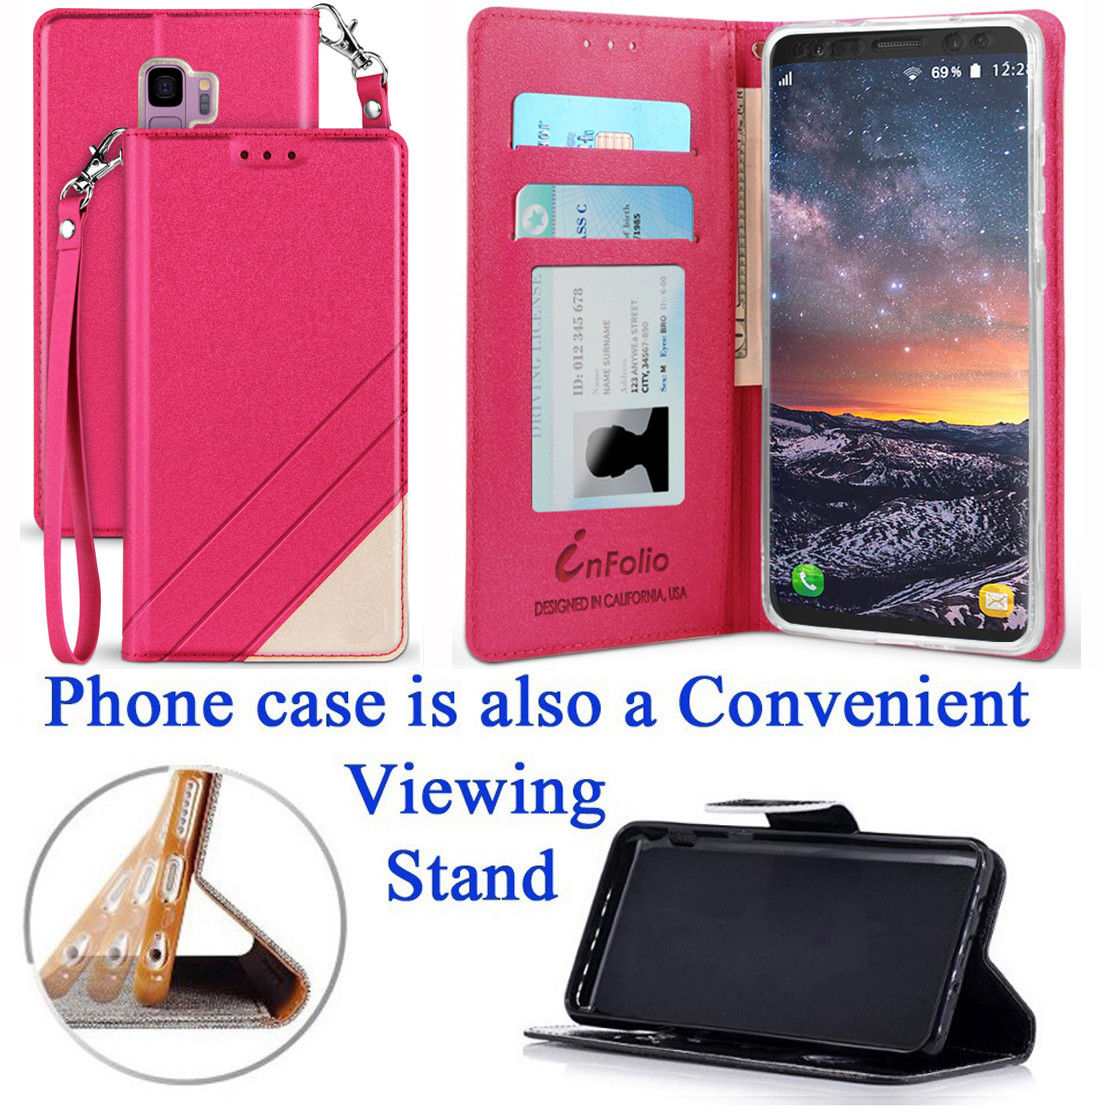 """for 5.8"""" Samsung S9 Galaxy S 9 Case Phone Case Wallet Fold Kick Stand Hybrid Pouch Card Pocket Purse Mosaic Grip Texture Screen Flip Cover Glitter Rose"""